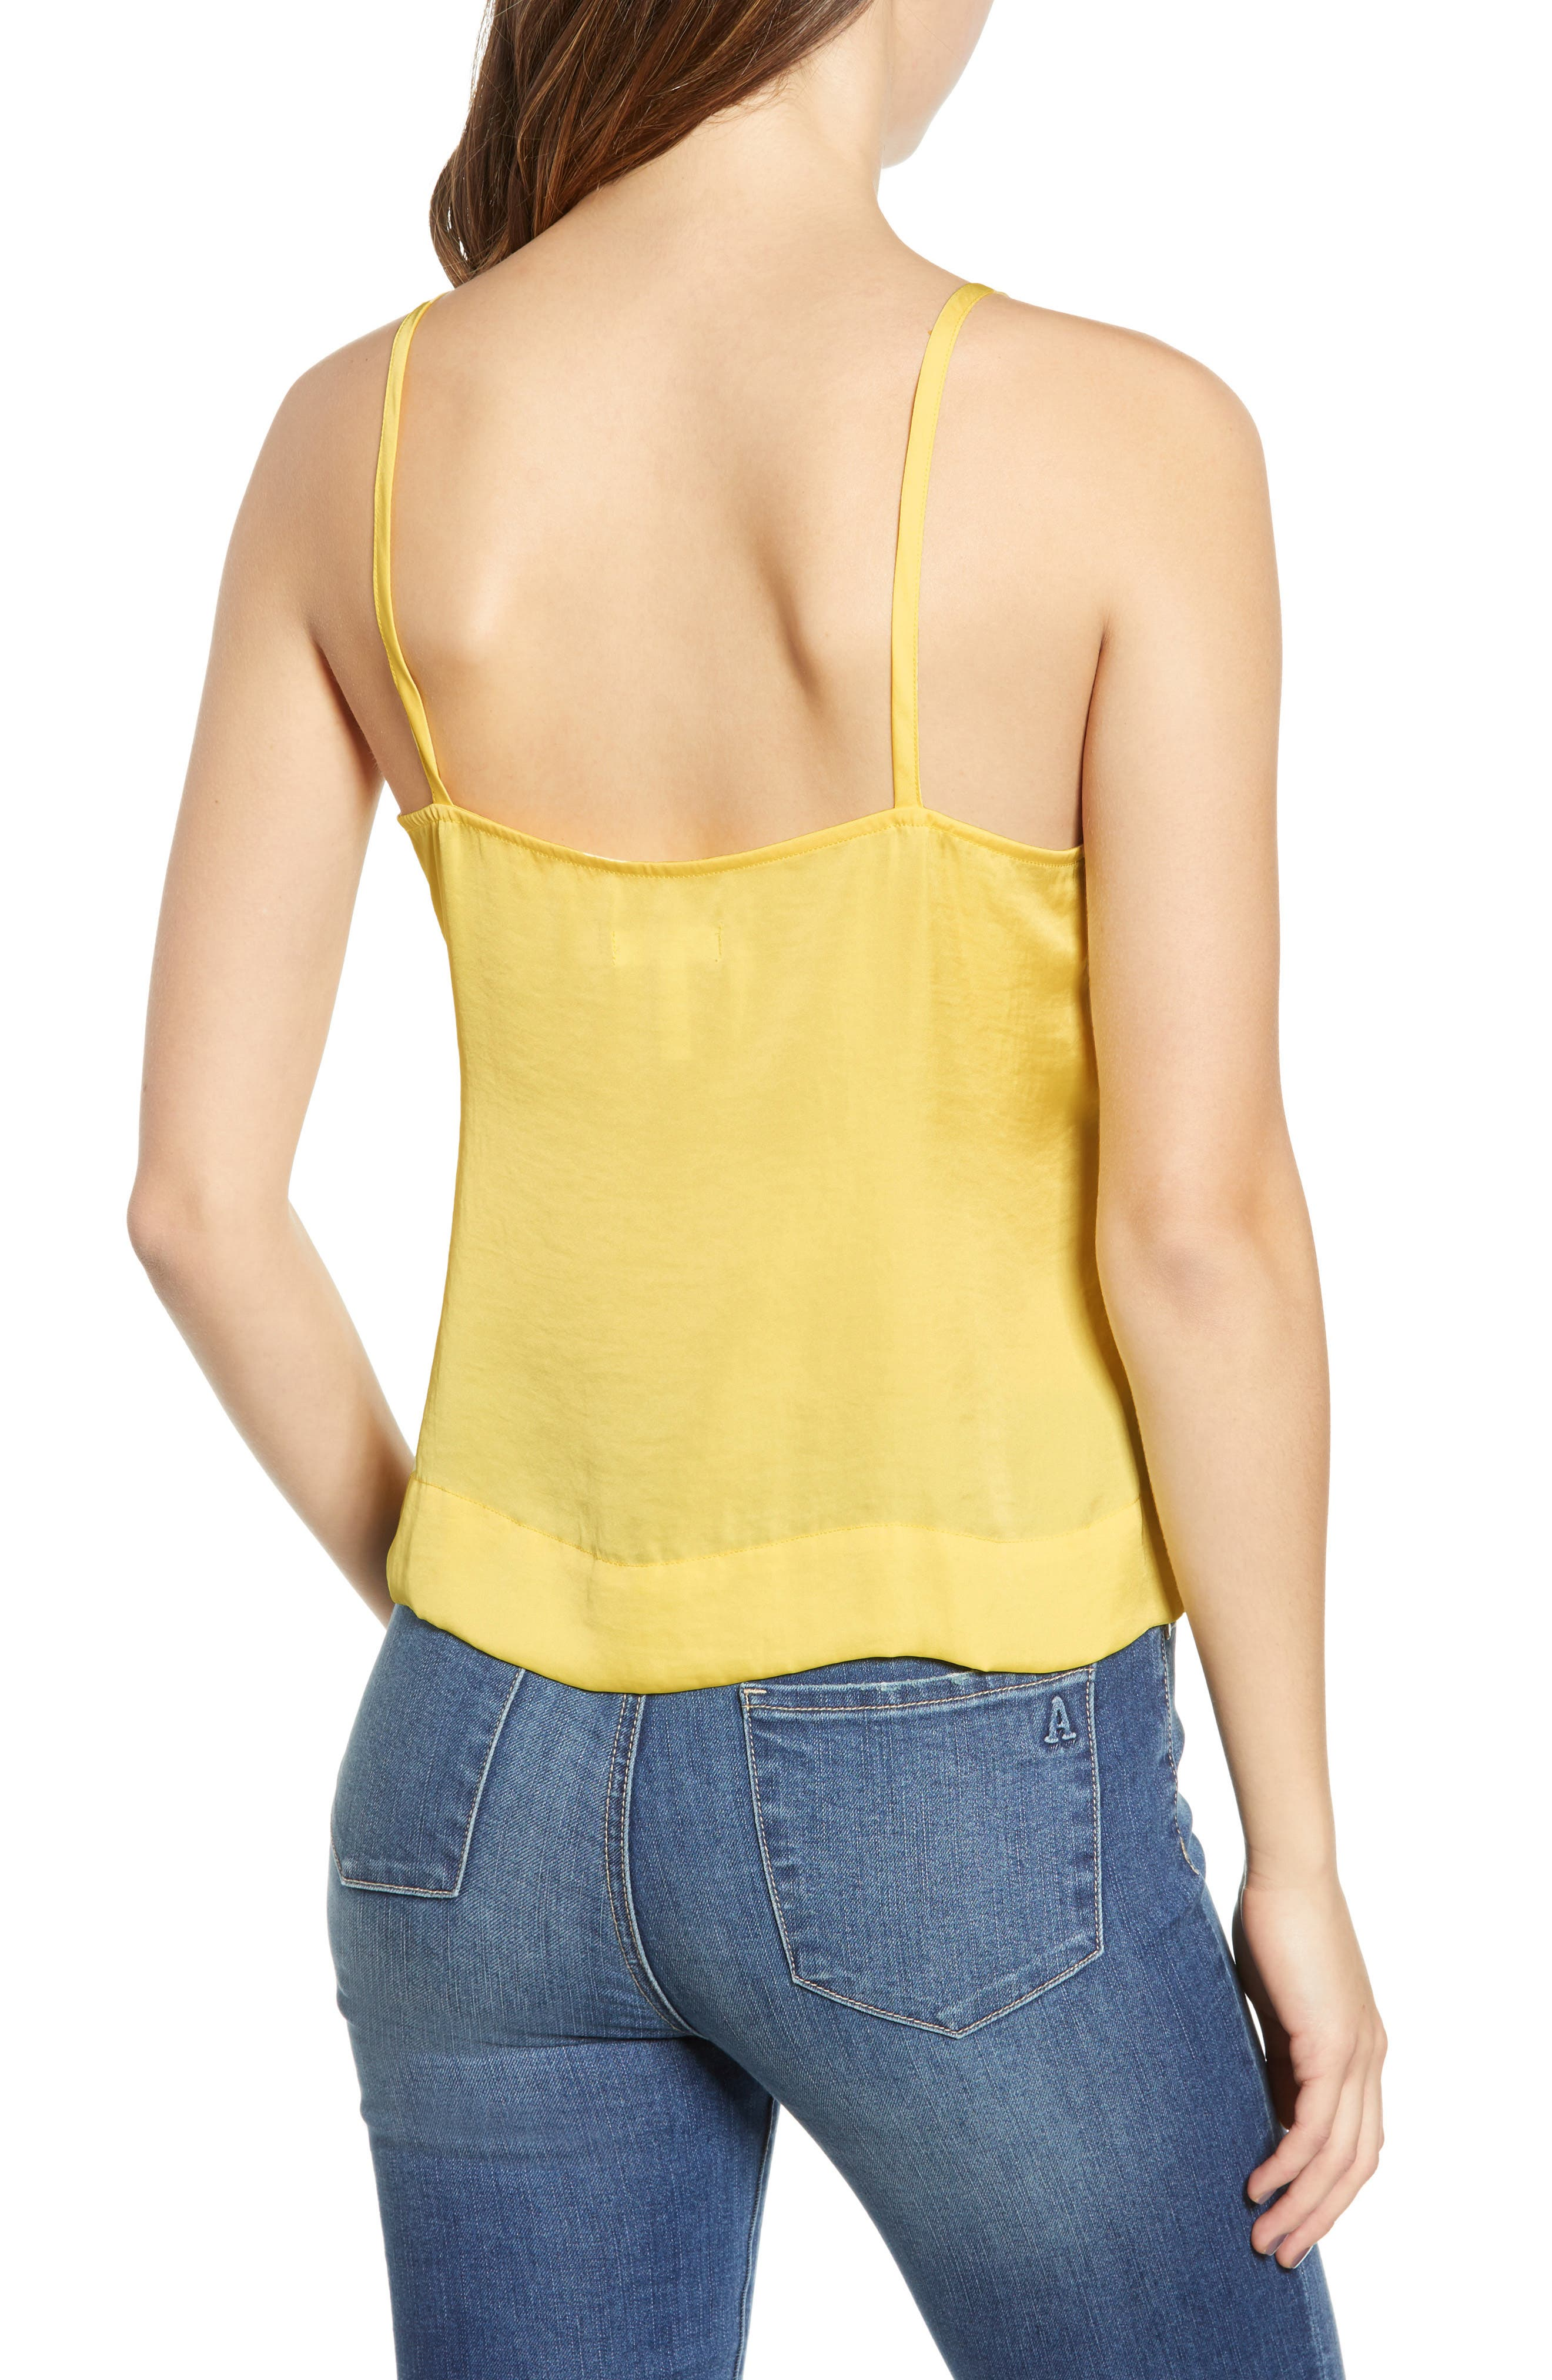 LEITH, Fluid Strappy Satin Camisole, Alternate thumbnail 2, color, YELLOW MERINGUE